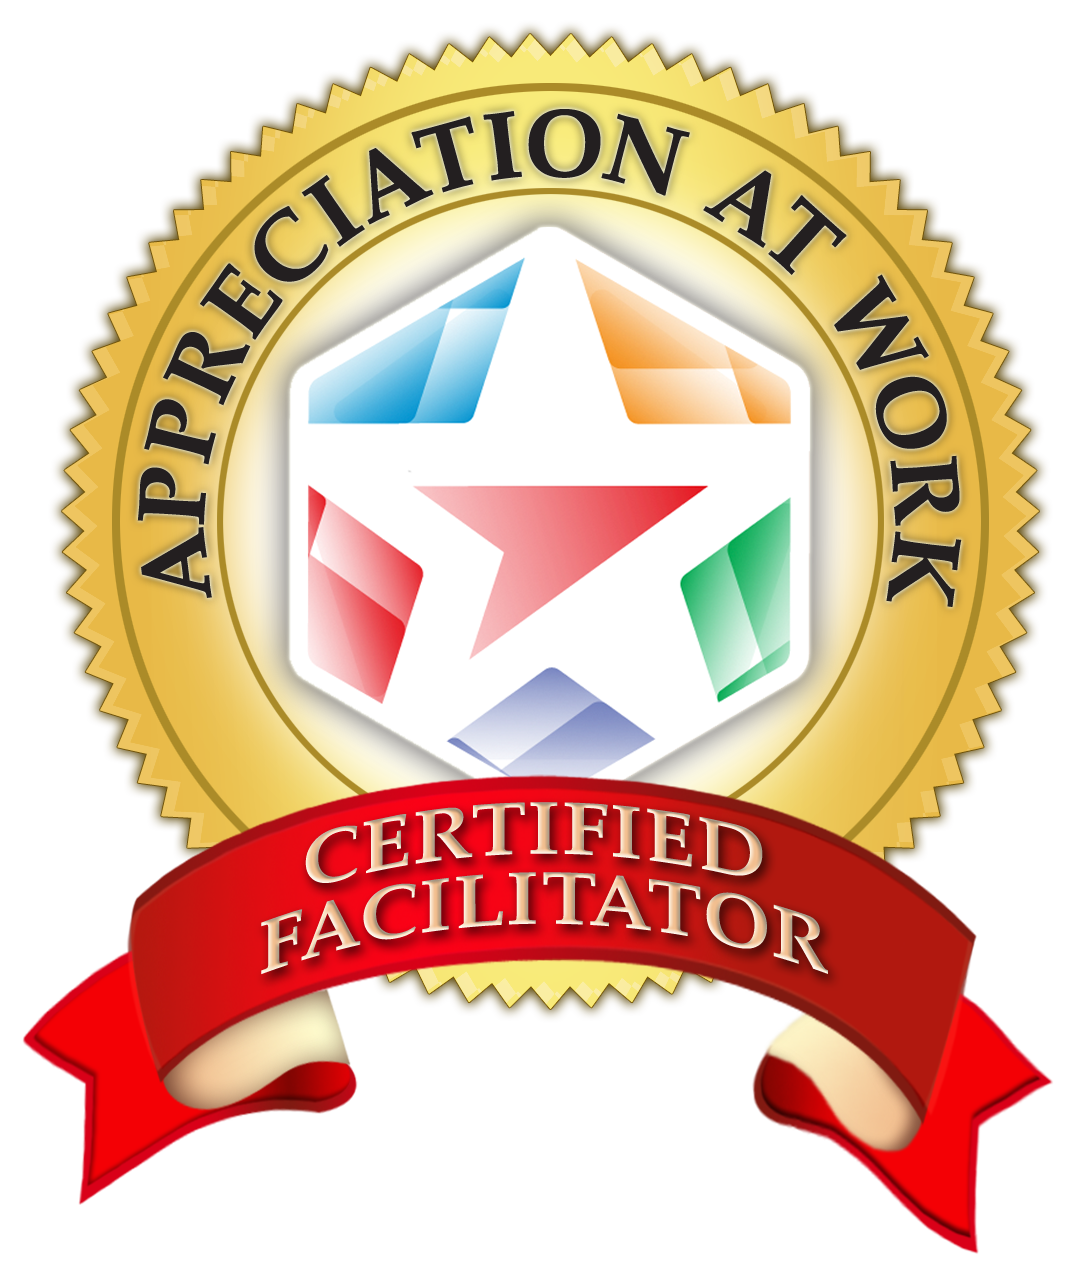 - Because of my personal experience, I was passionate about teaching businesses the languages of appreciation, so I became a certified facilitator to teach Language Appreciation in the workplace.